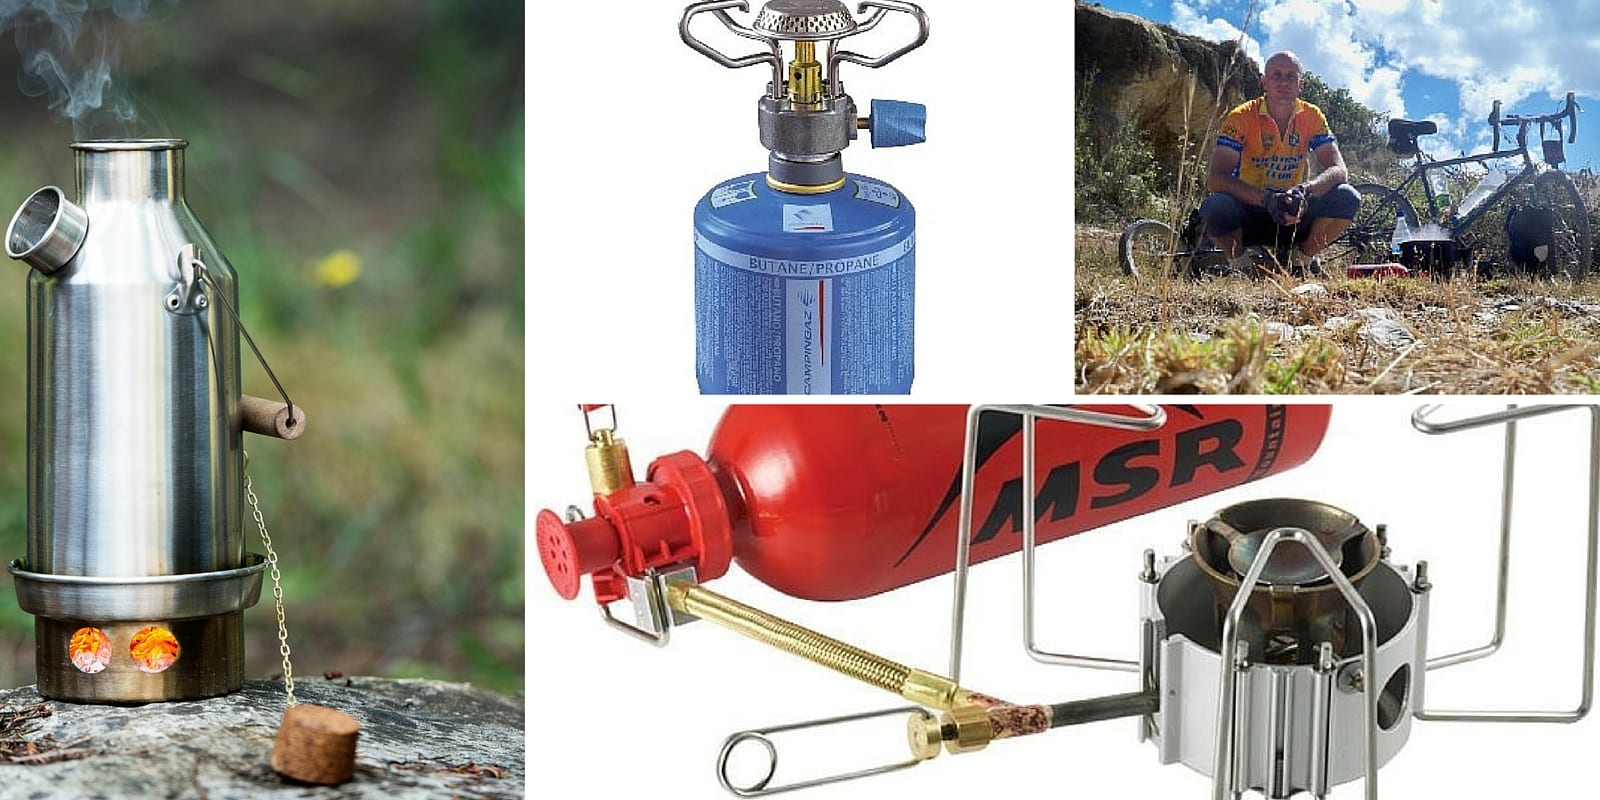 A useful guide on how to choose a camp stove for bicycle touring